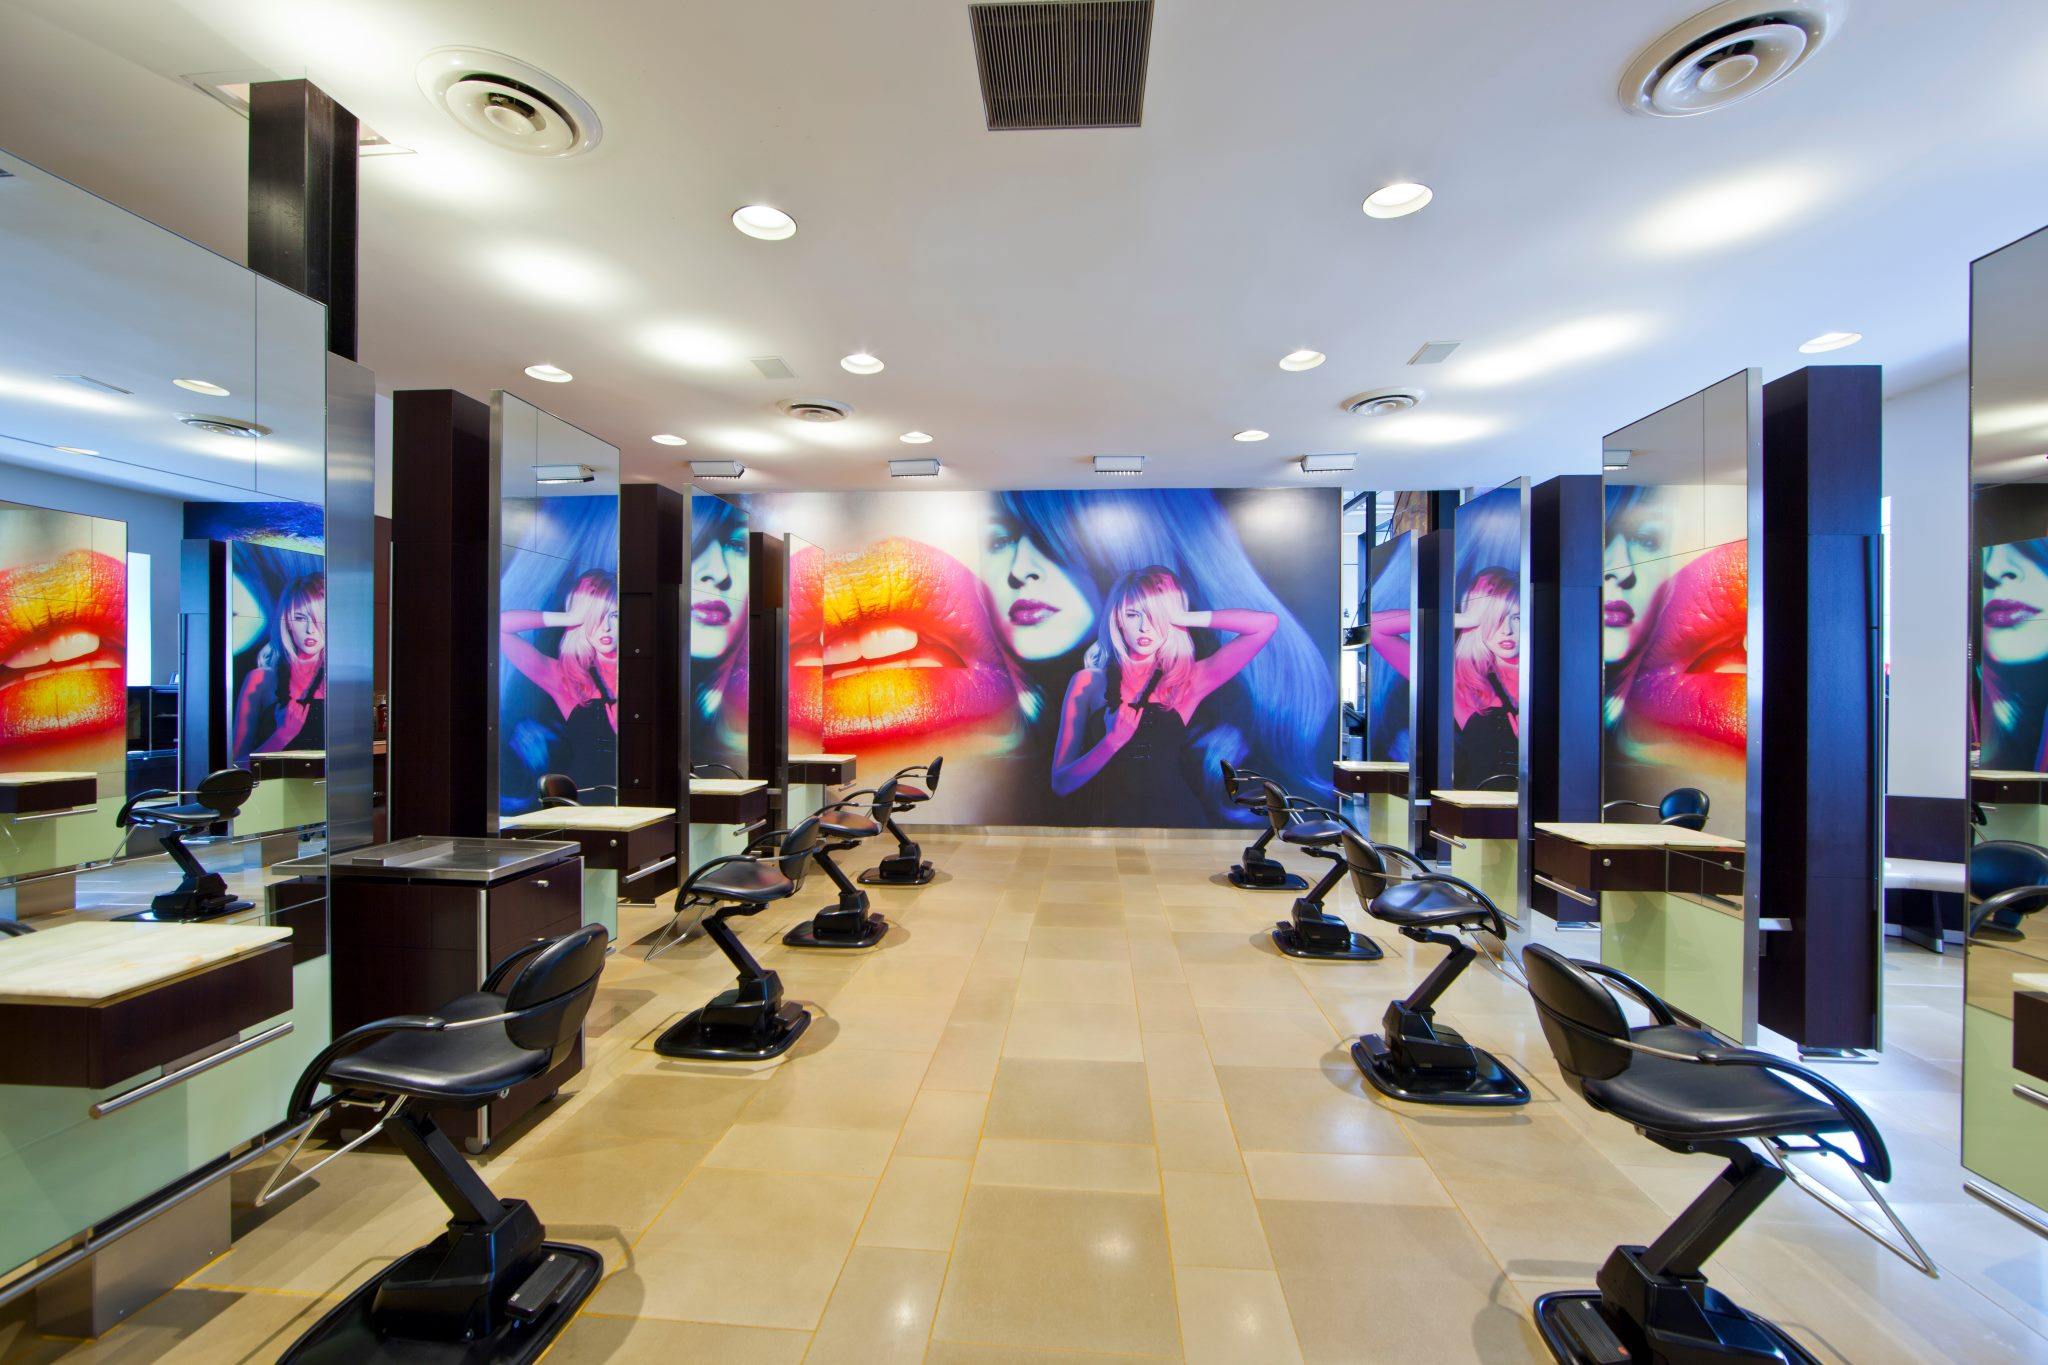 NuBest Is More Like A Wellness Center Than A Salon And Spa. Located In The  Iconic Americana Manhasset Mall, This Multi Level, 20,000 Foot Space Offers  ...